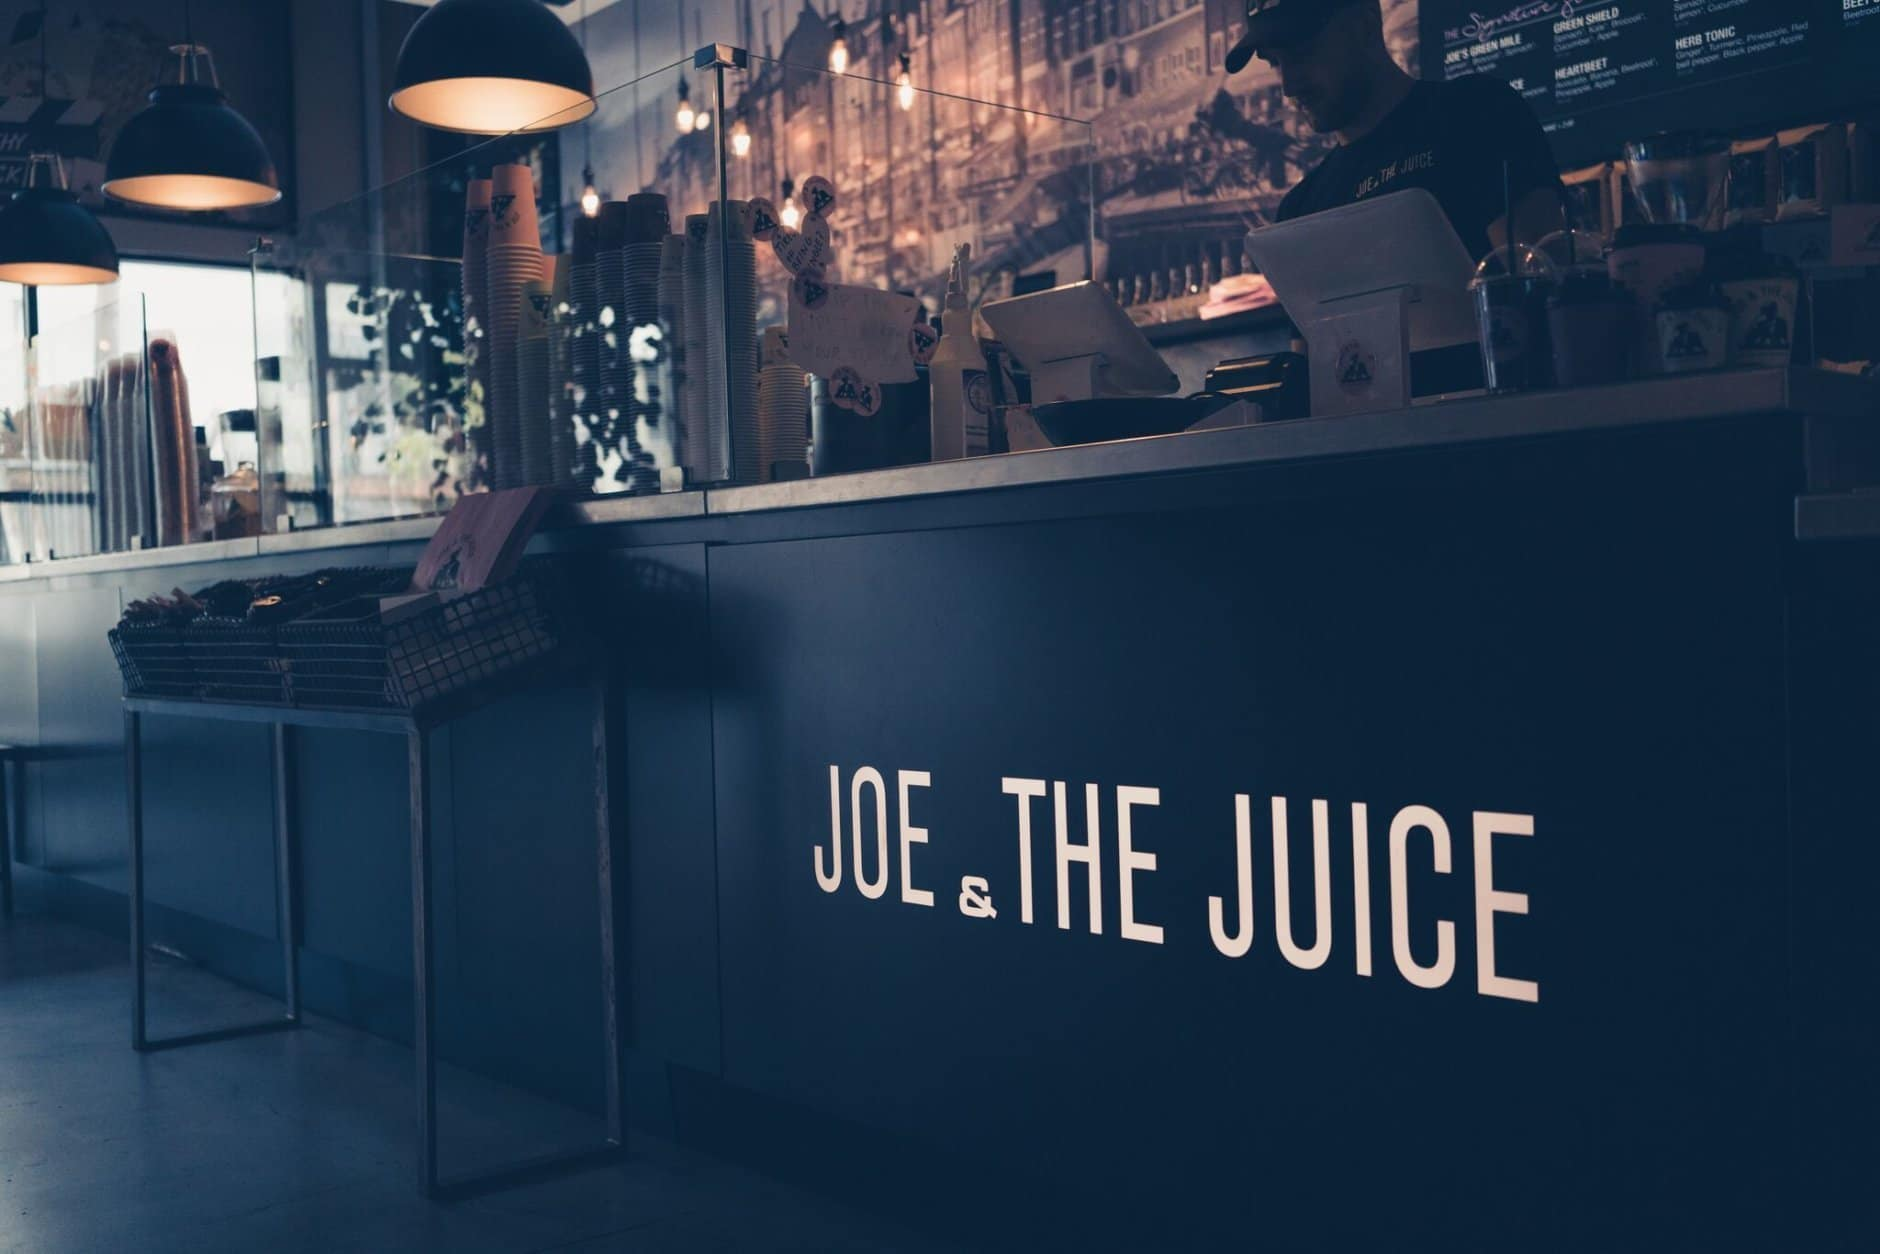 Joe & The Juice is a Danish chain serving fresh juices, coffees, breakfast and sandwiches. (Courtesy Joe & The Juice)